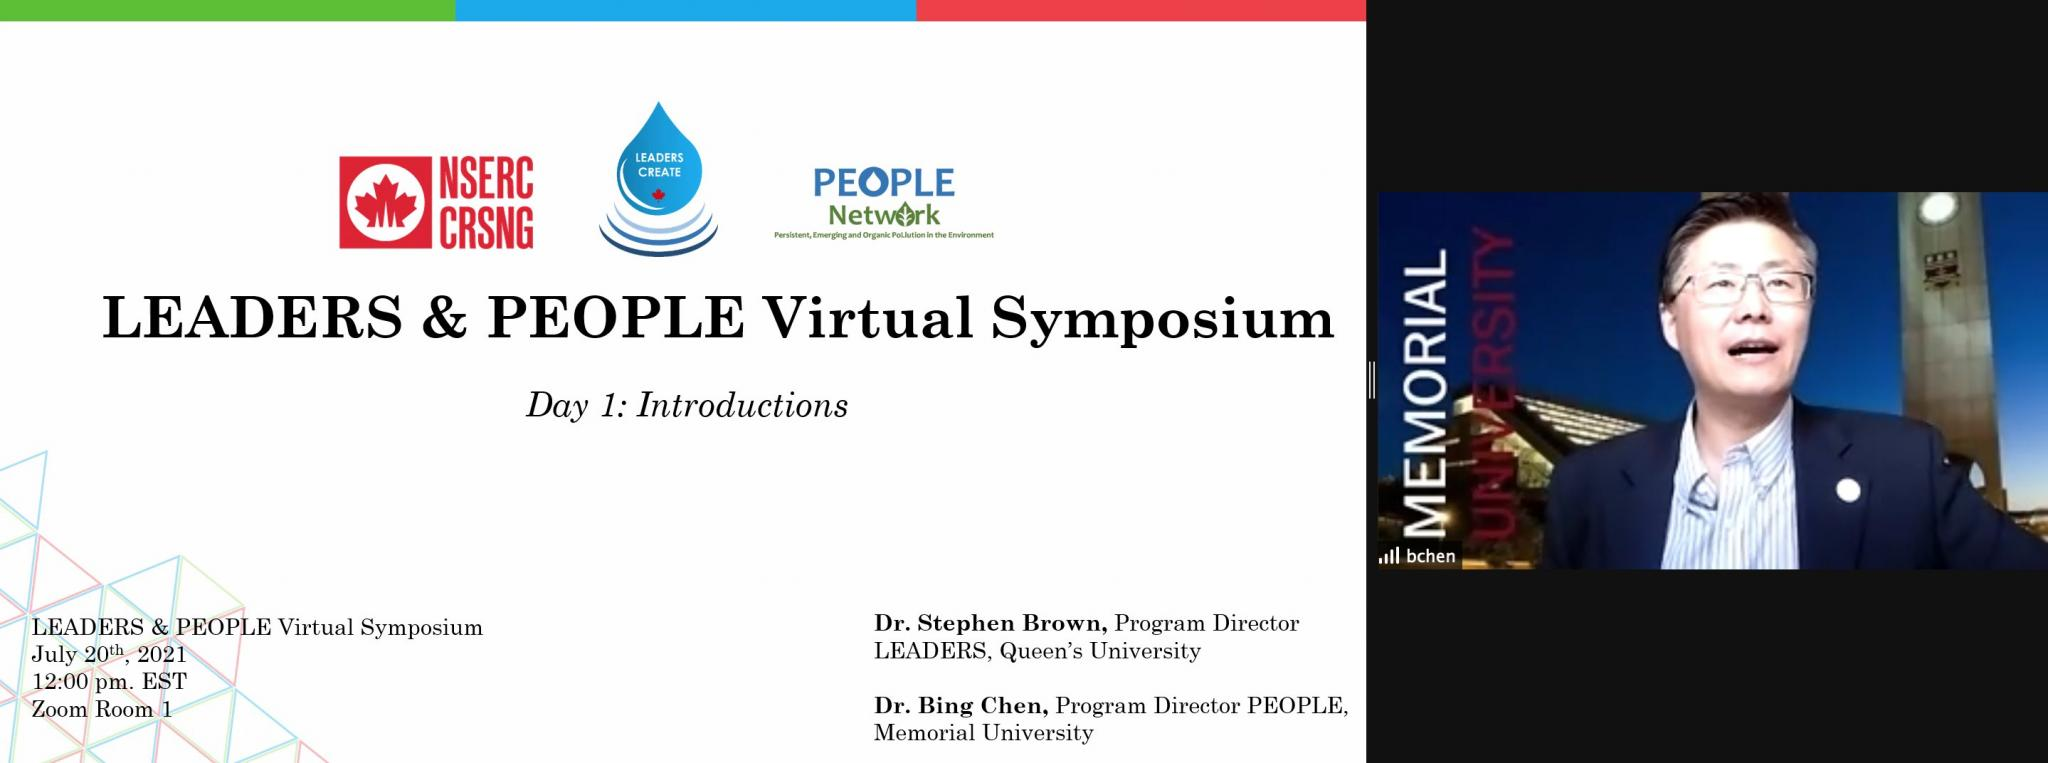 Dr. Bing Chen, Director of the PEOPLE Network welcomes attendees to the 2021 LEADERS & PEOPLE Symposium